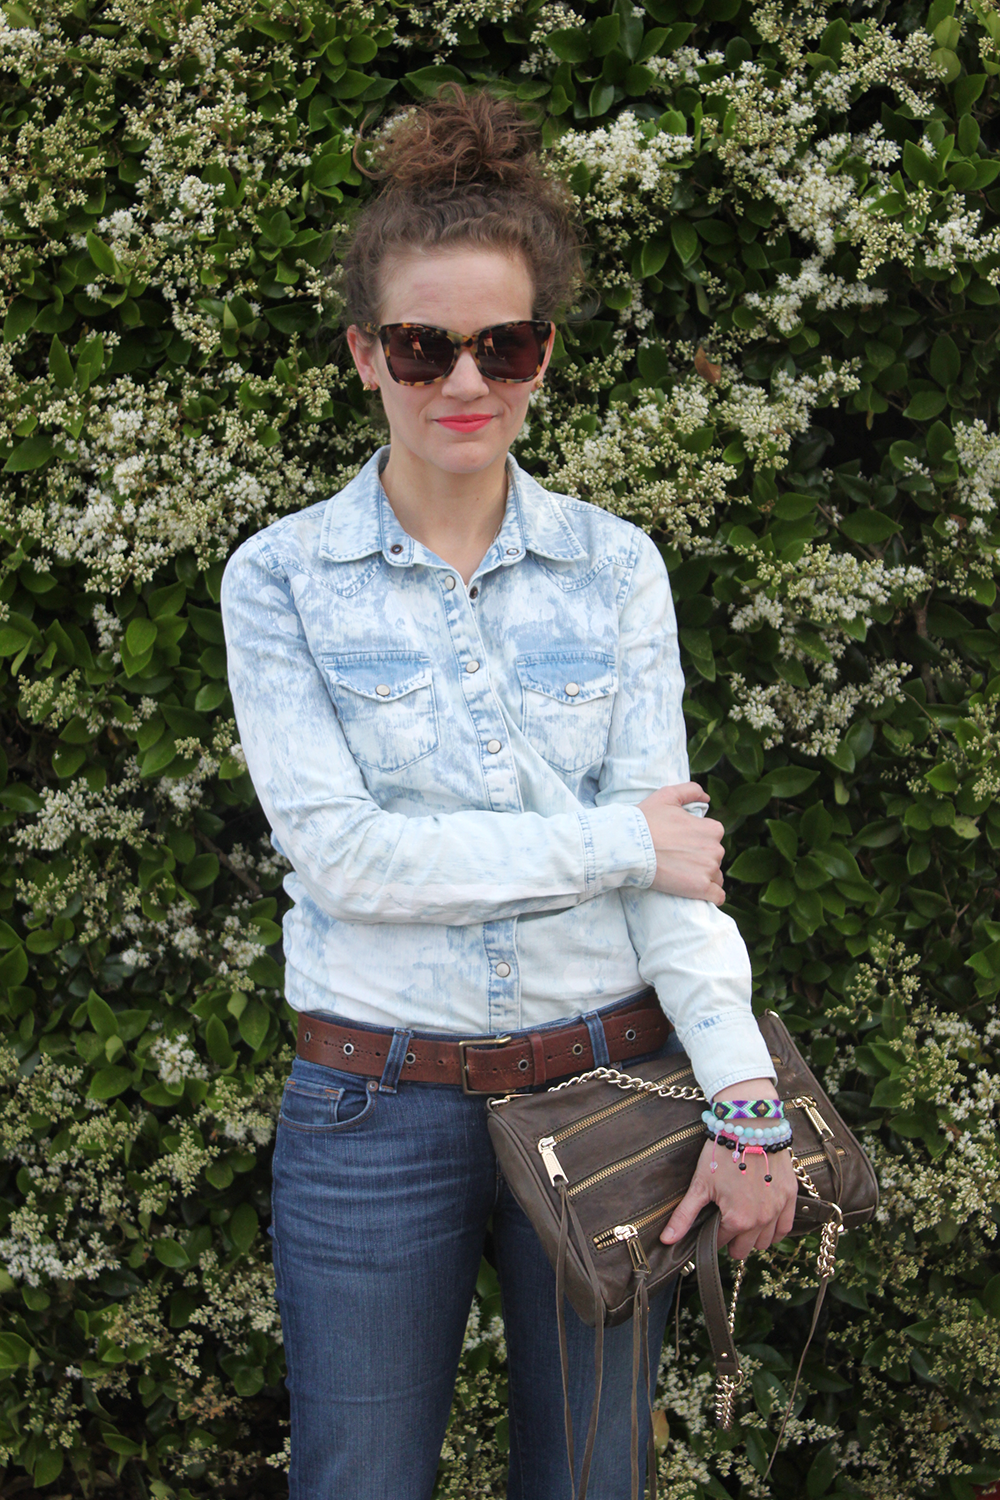 denim on denim for the win!